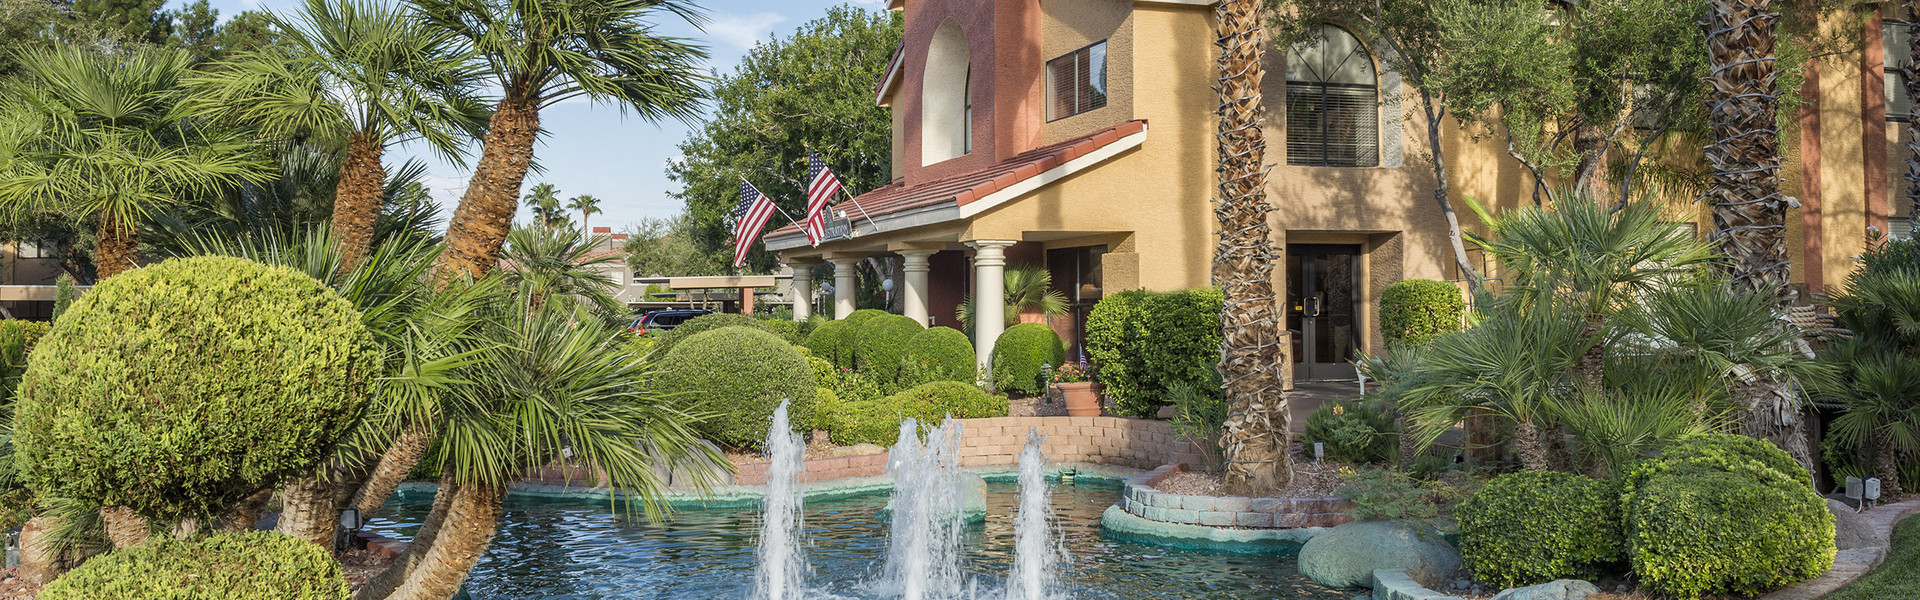 Review the Las Vegas packages and specials on Westgate Flamingo Bay accommodations and enjoy incredible savings on your next Las Vegas vacation getaway.